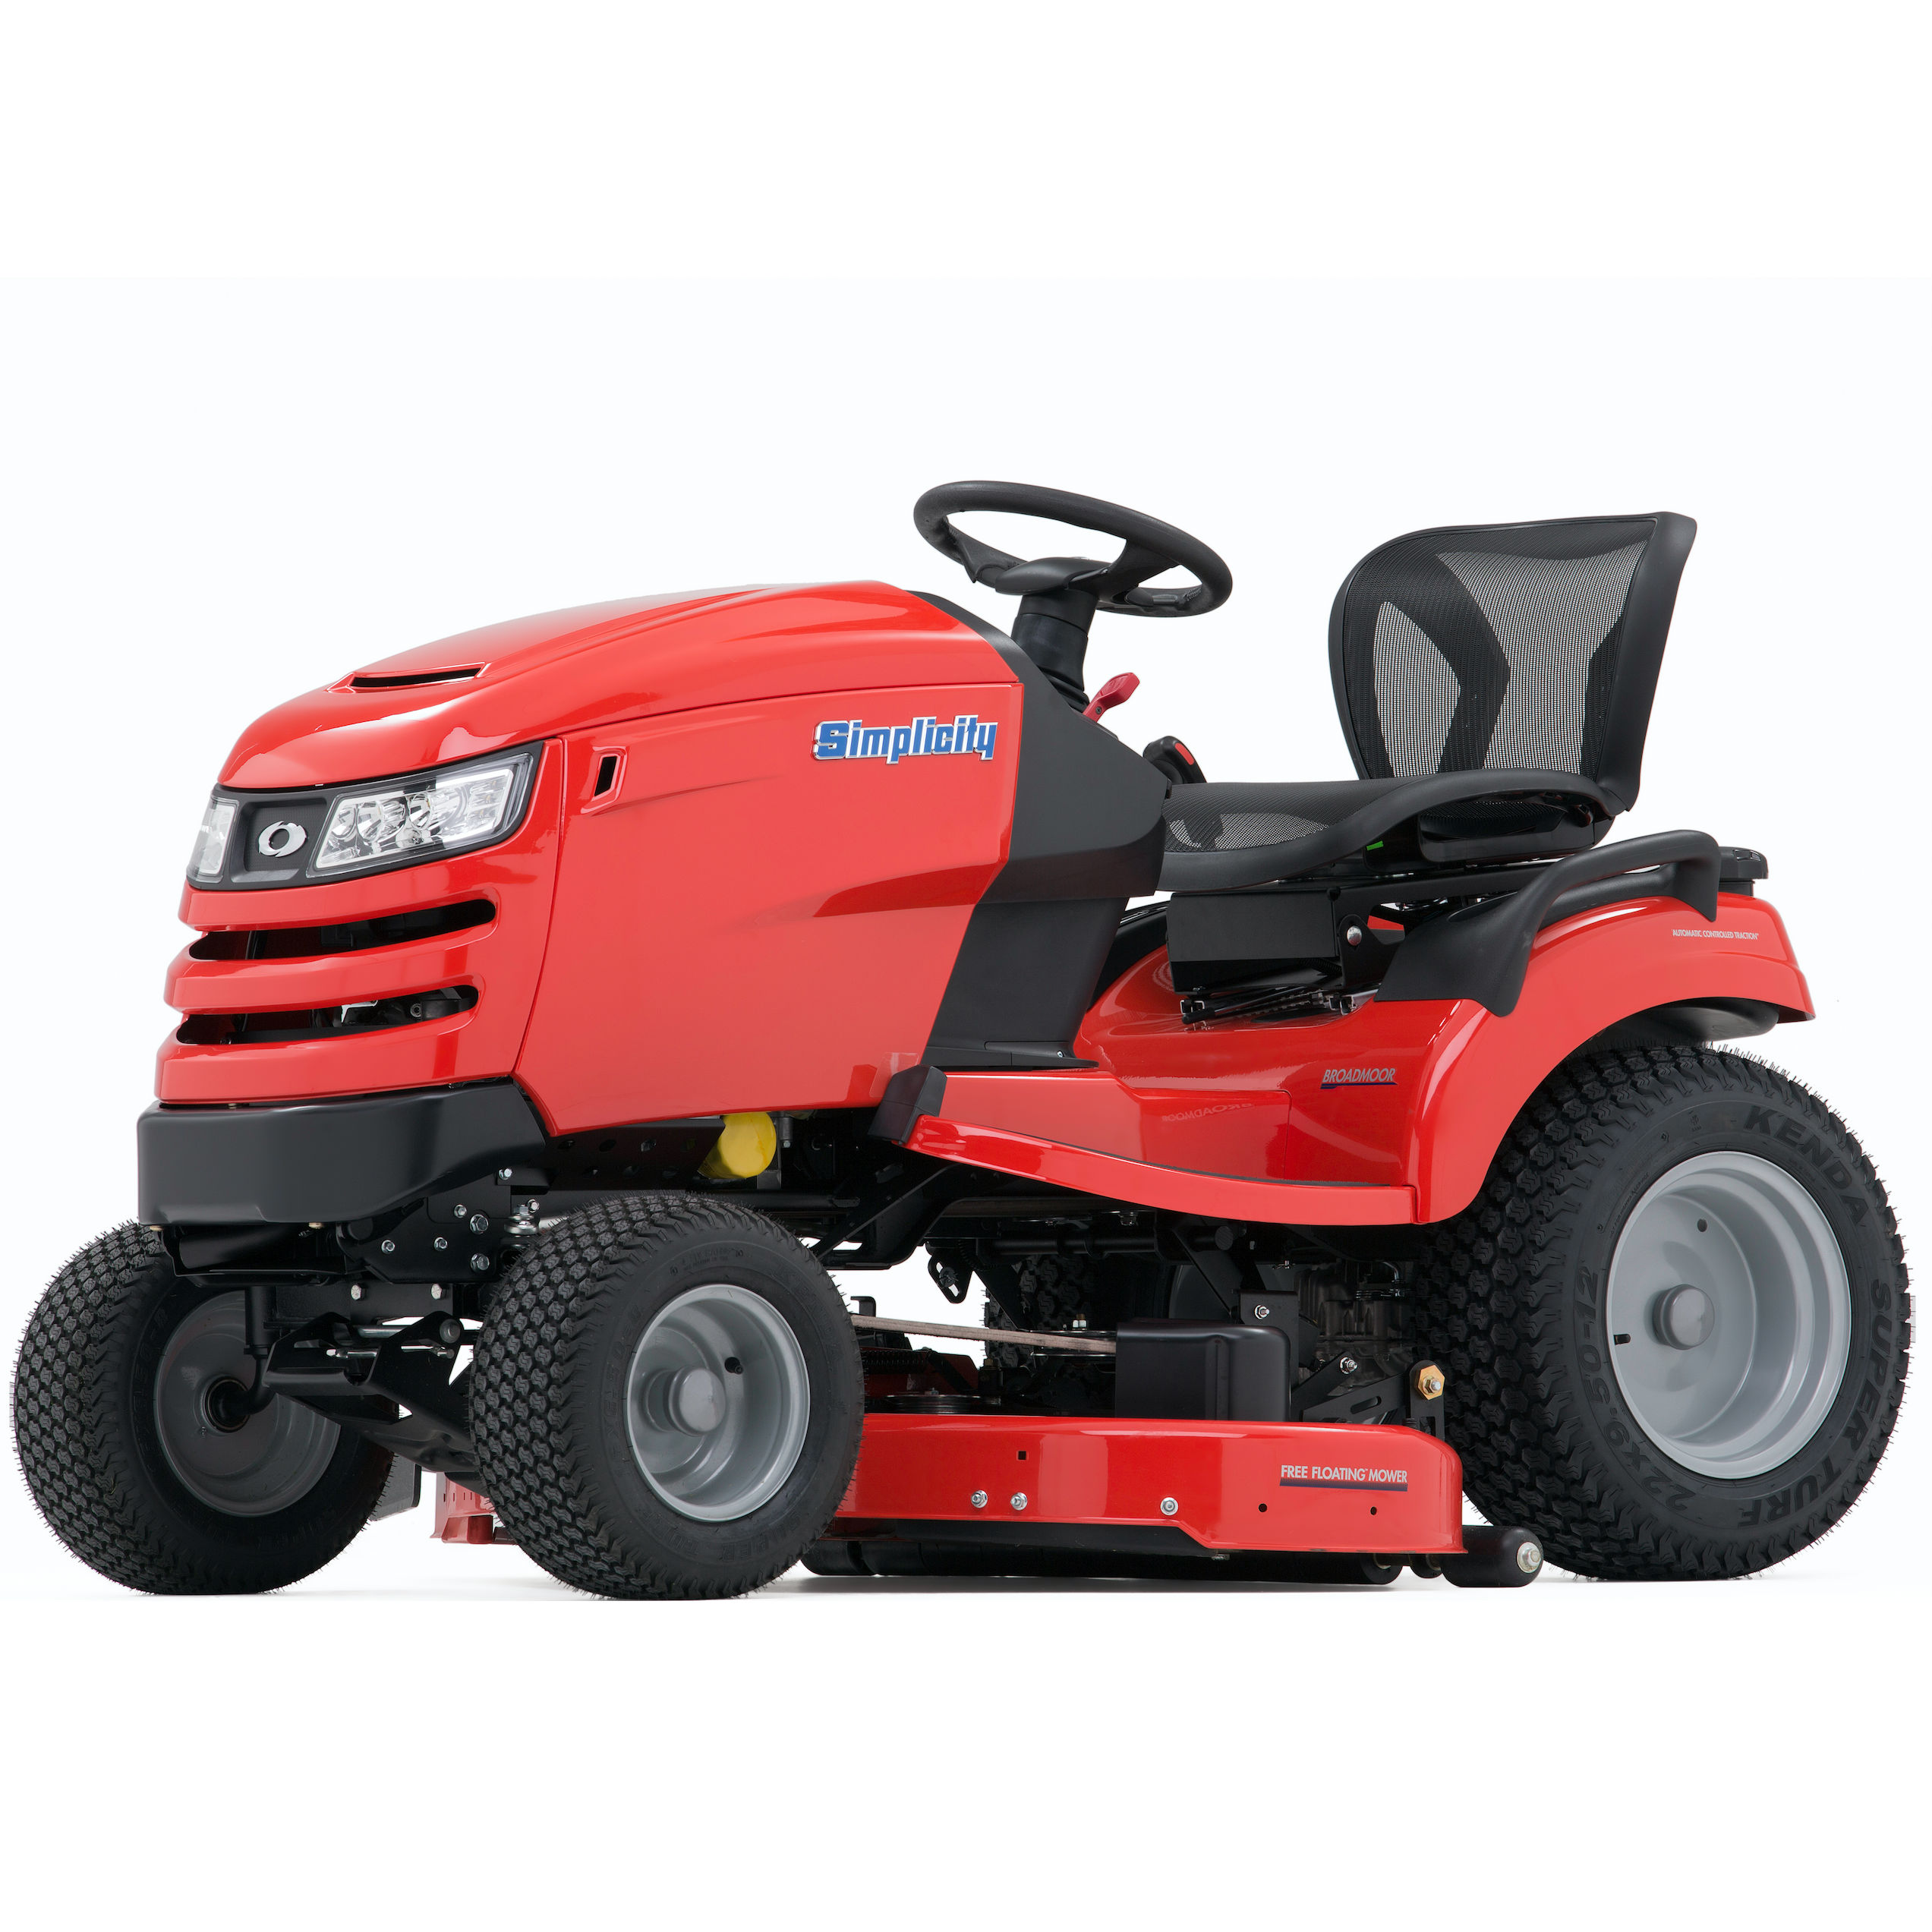 Simplicity Broadmoor Slt300 Lawn Tractor With Striping